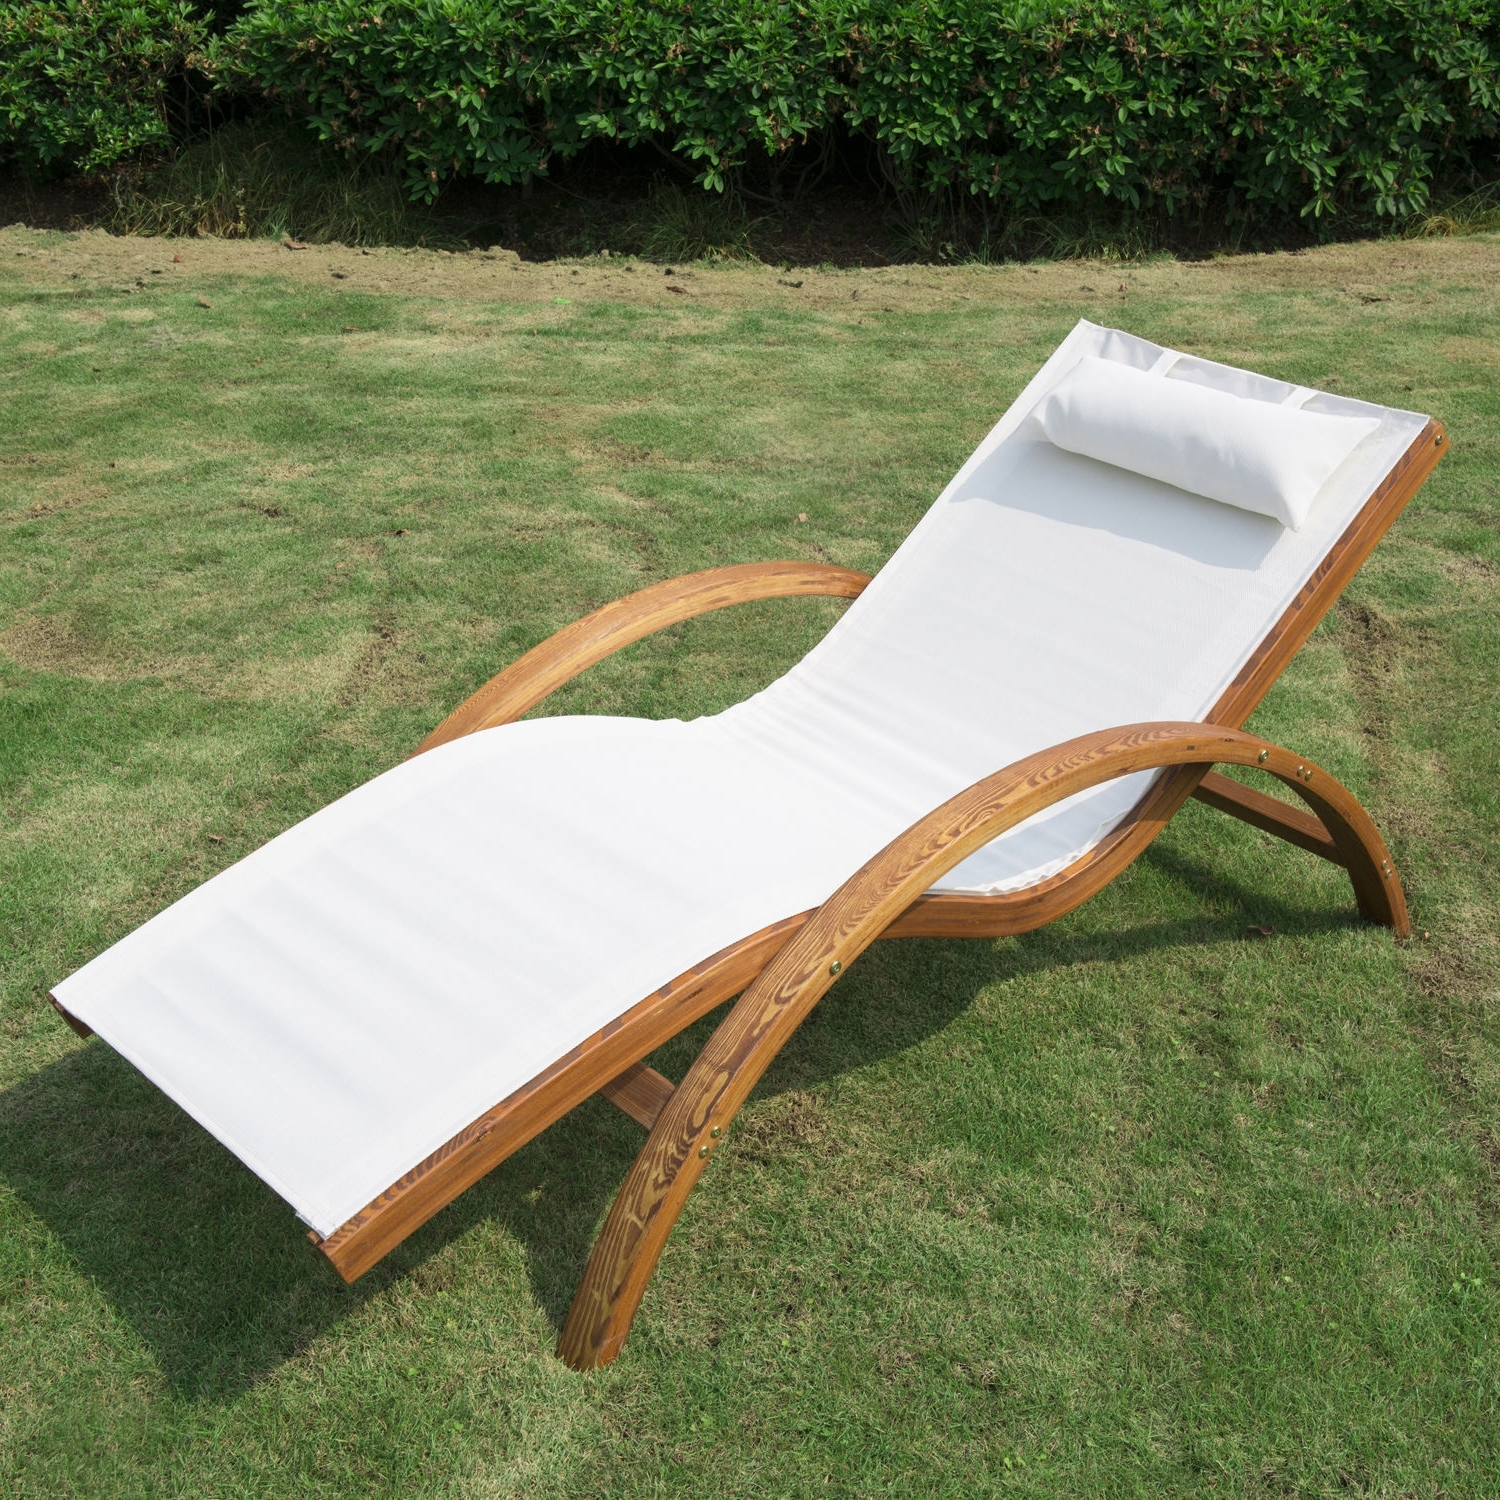 Most Popular Pool Chaise Lounges Within Wooden Patio Chaise Lounge Chair Outdoor Furniture Pool Garden (View 6 of 15)